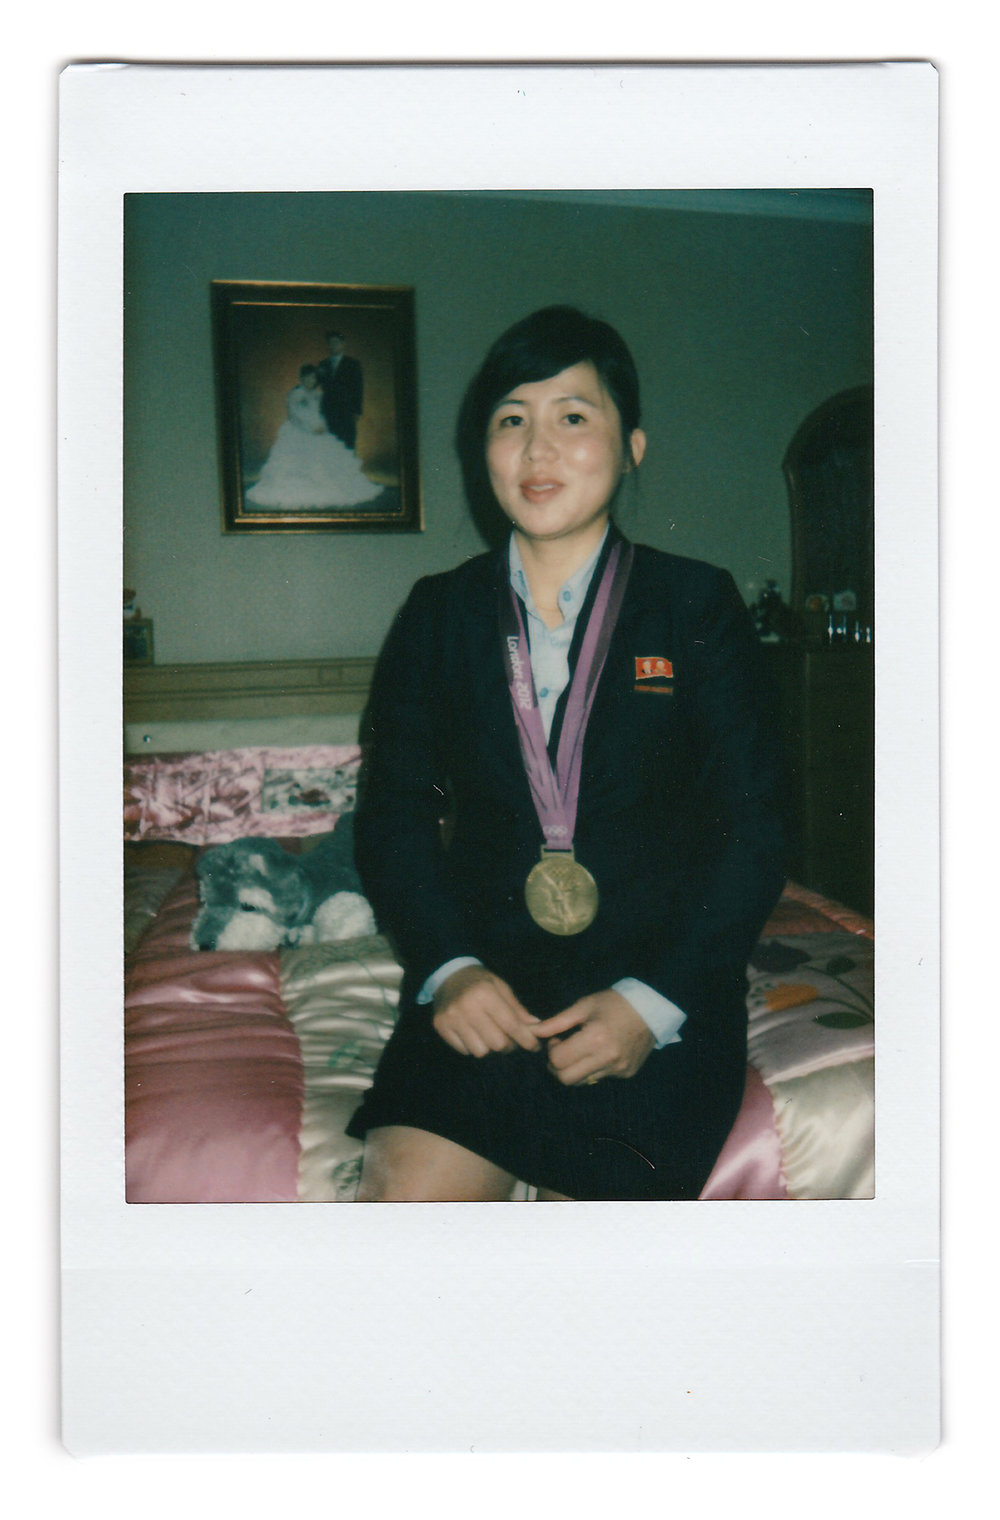 In this Oct. 23, 2014, photo made with an instant camera, North Korean London 2012 Olympics Judo gold medalist, An Kum Ae poses in her bedroom with her gold medal in Pyongyang, North Korea. When asked what's important to them, North Koreans might talk about working hard, or doing well at sports, or having a big family, but leader Kim Jong Un is never far from the conversation.(AP Photo/Wong Maye-E)